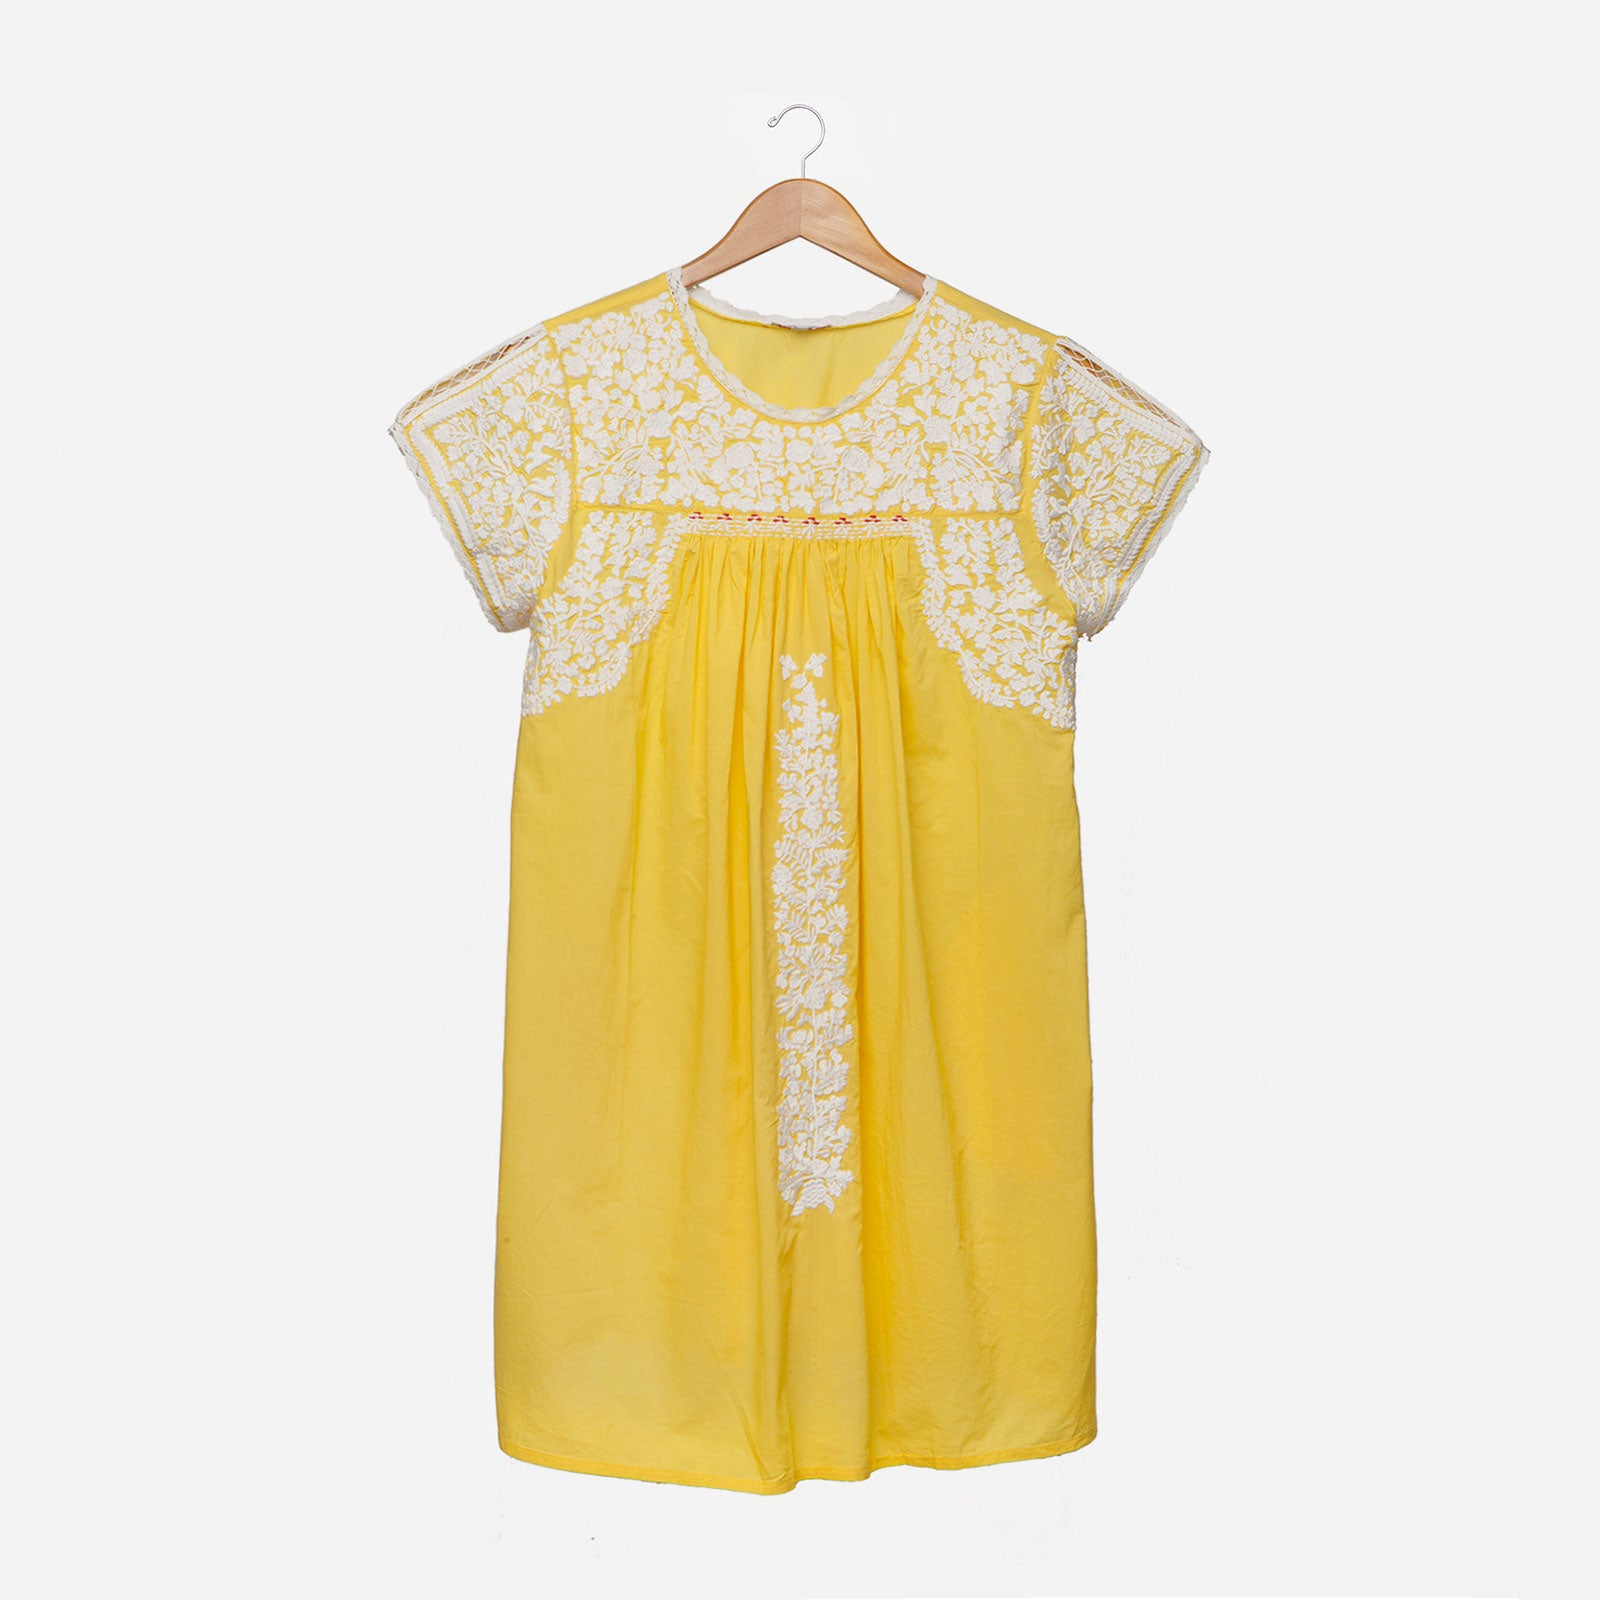 Floral Embroidered Lace Dress Yellow Oyster - Frances Valentine